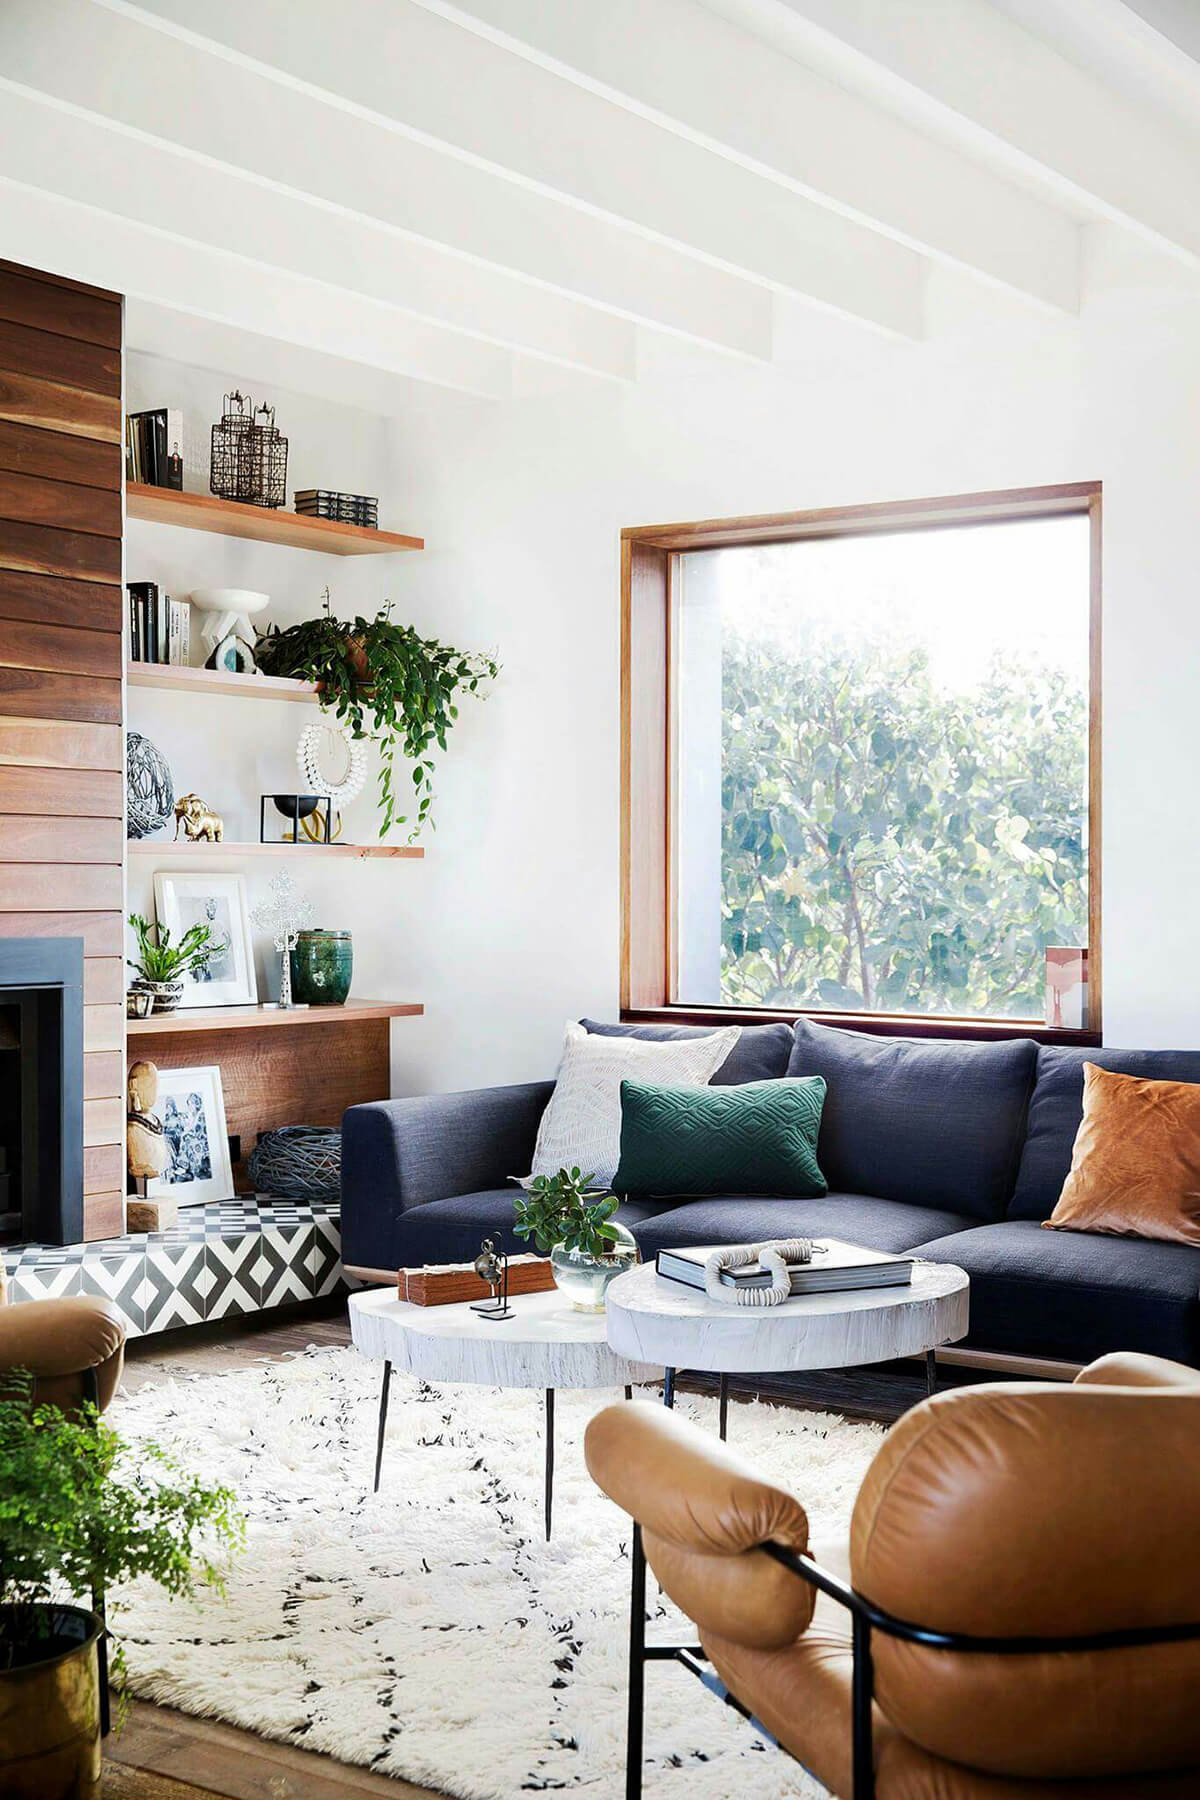 26 Best Modern Living Room Decorating Ideas and Designs for 2019